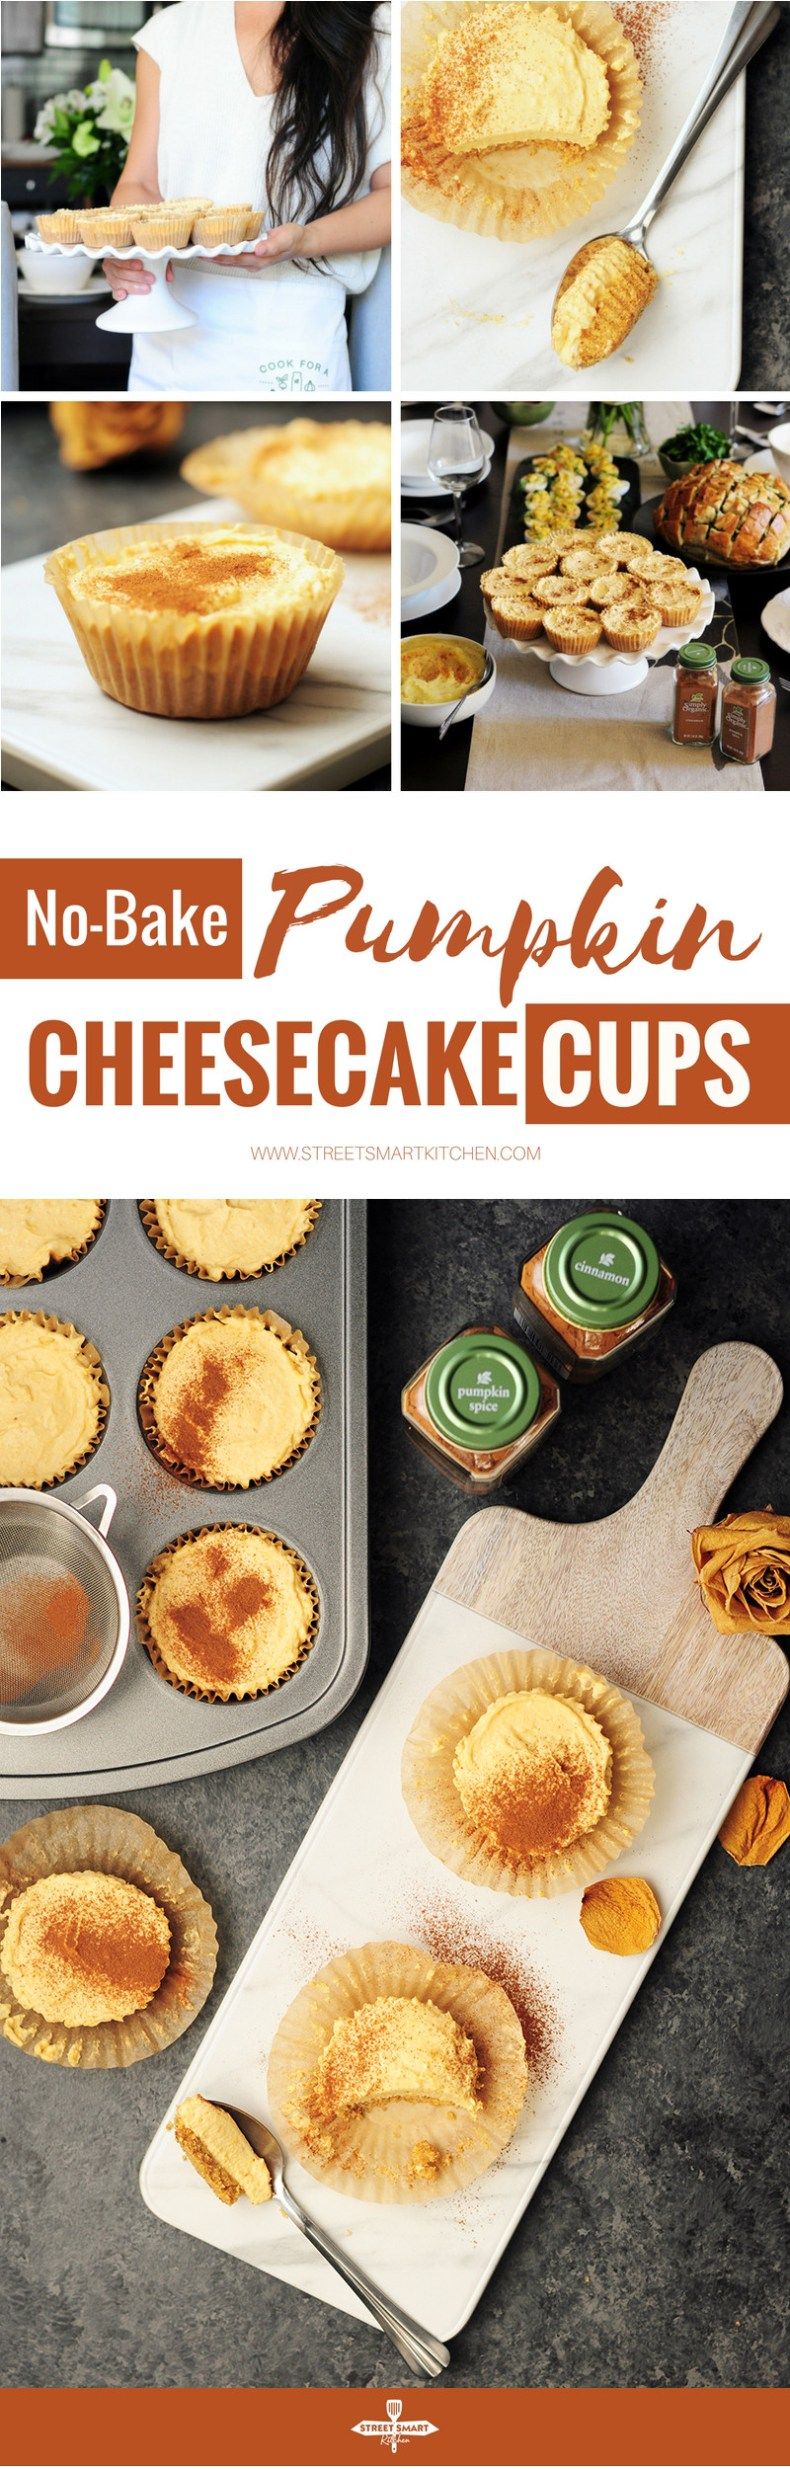 No-Bake pumpkin cheesecake in individual cups! They are great to please a crowd and you can prepare them beforehand to chill in the fridge.